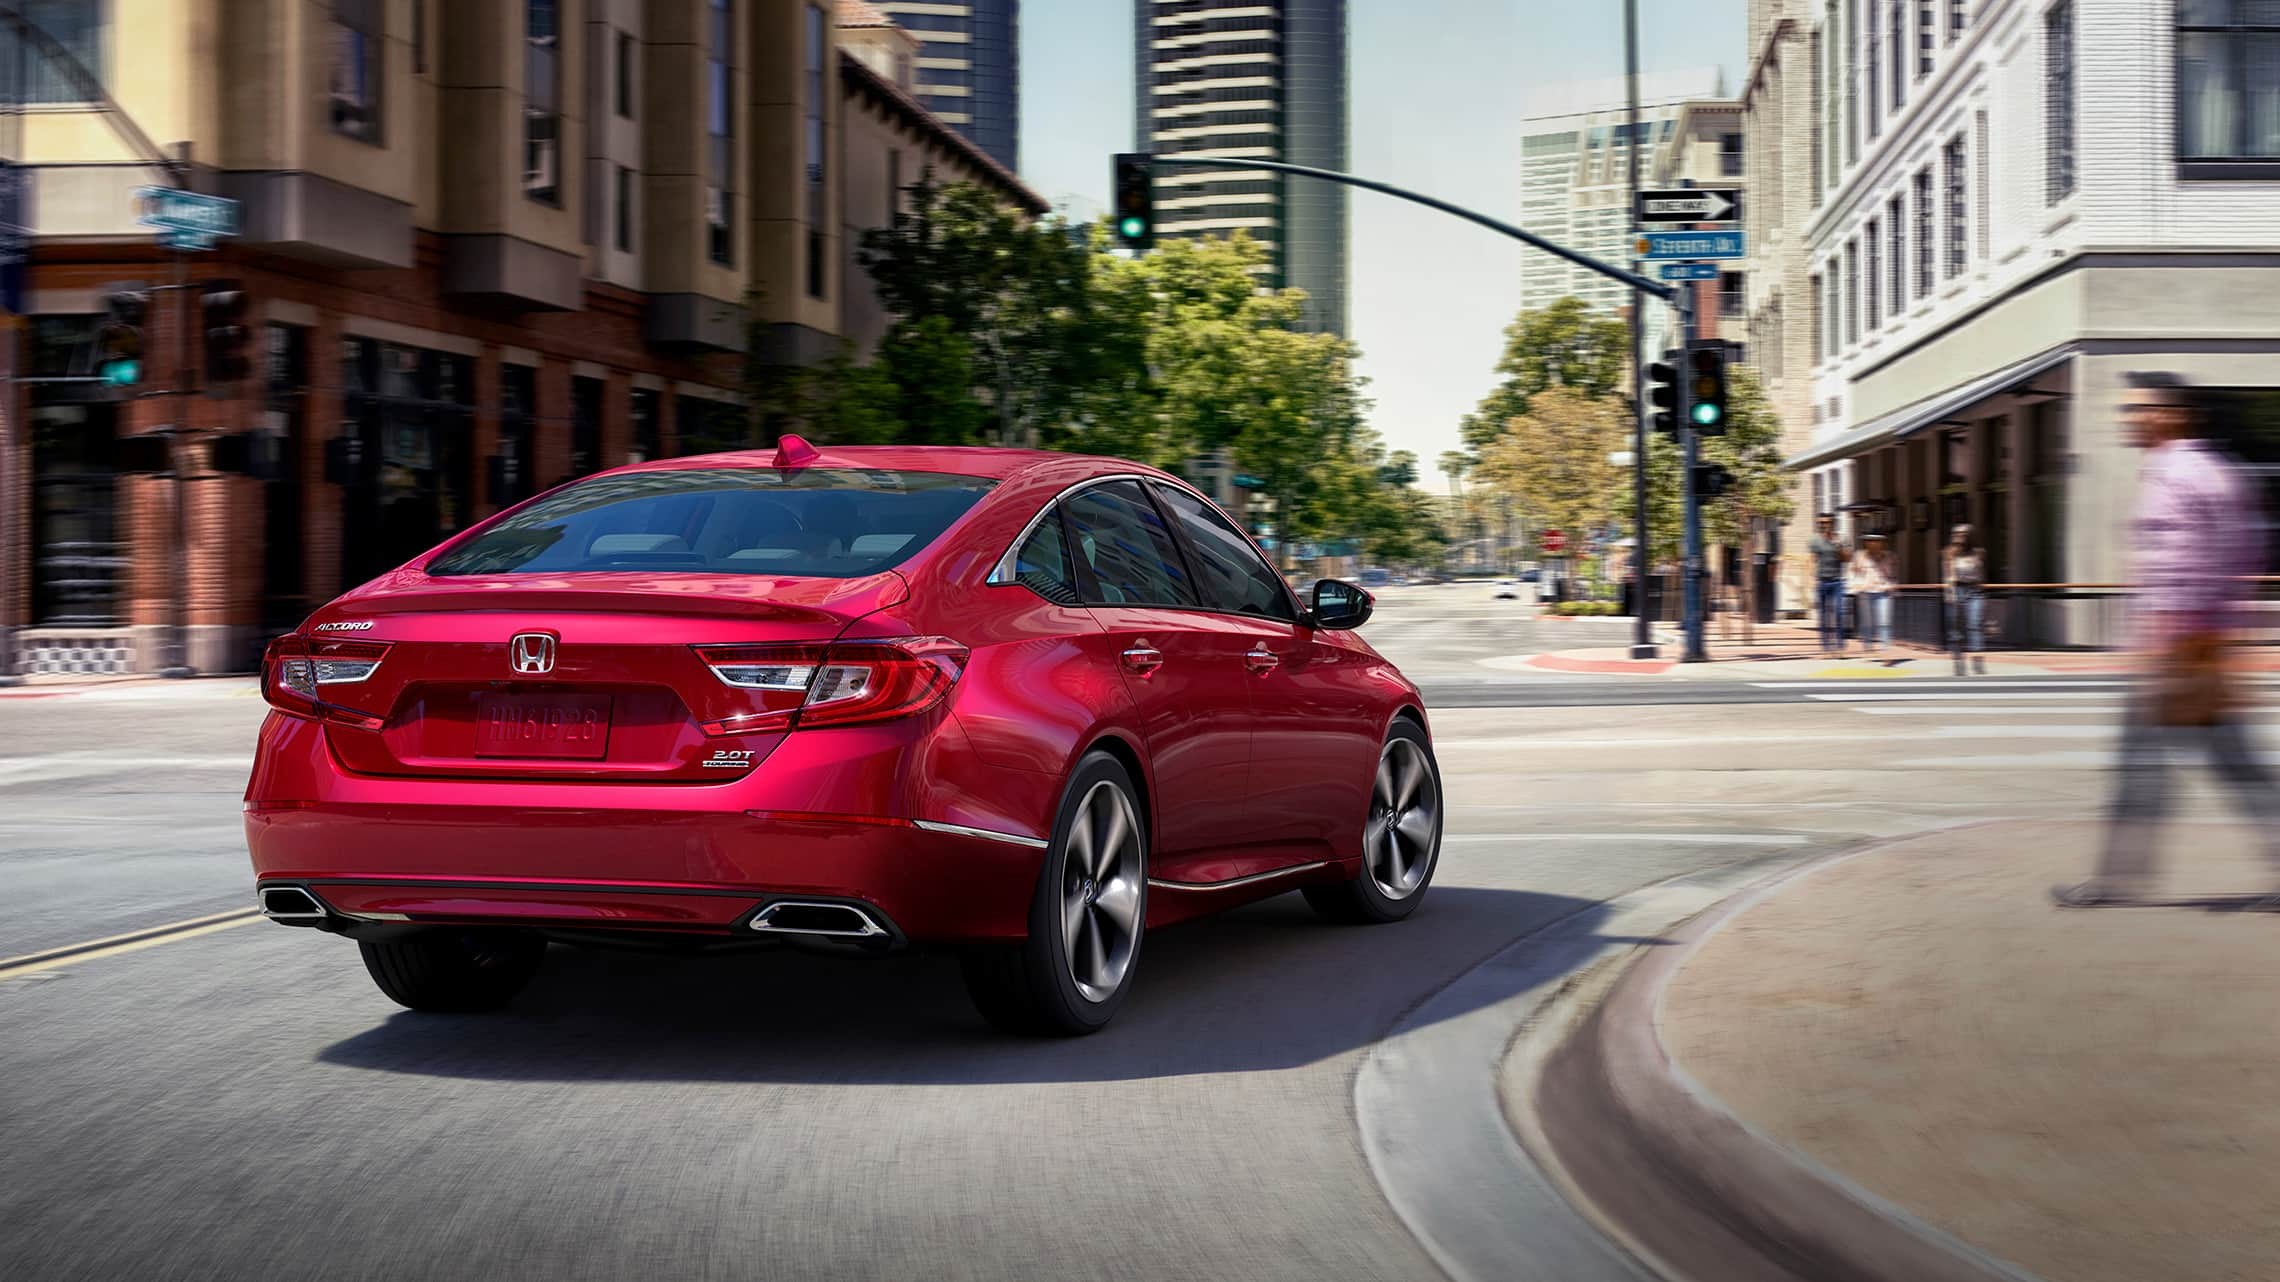 2020 Honda Accord Touring 2.0T in Radiant Red Metallic, making a turn at a downtown intersection.